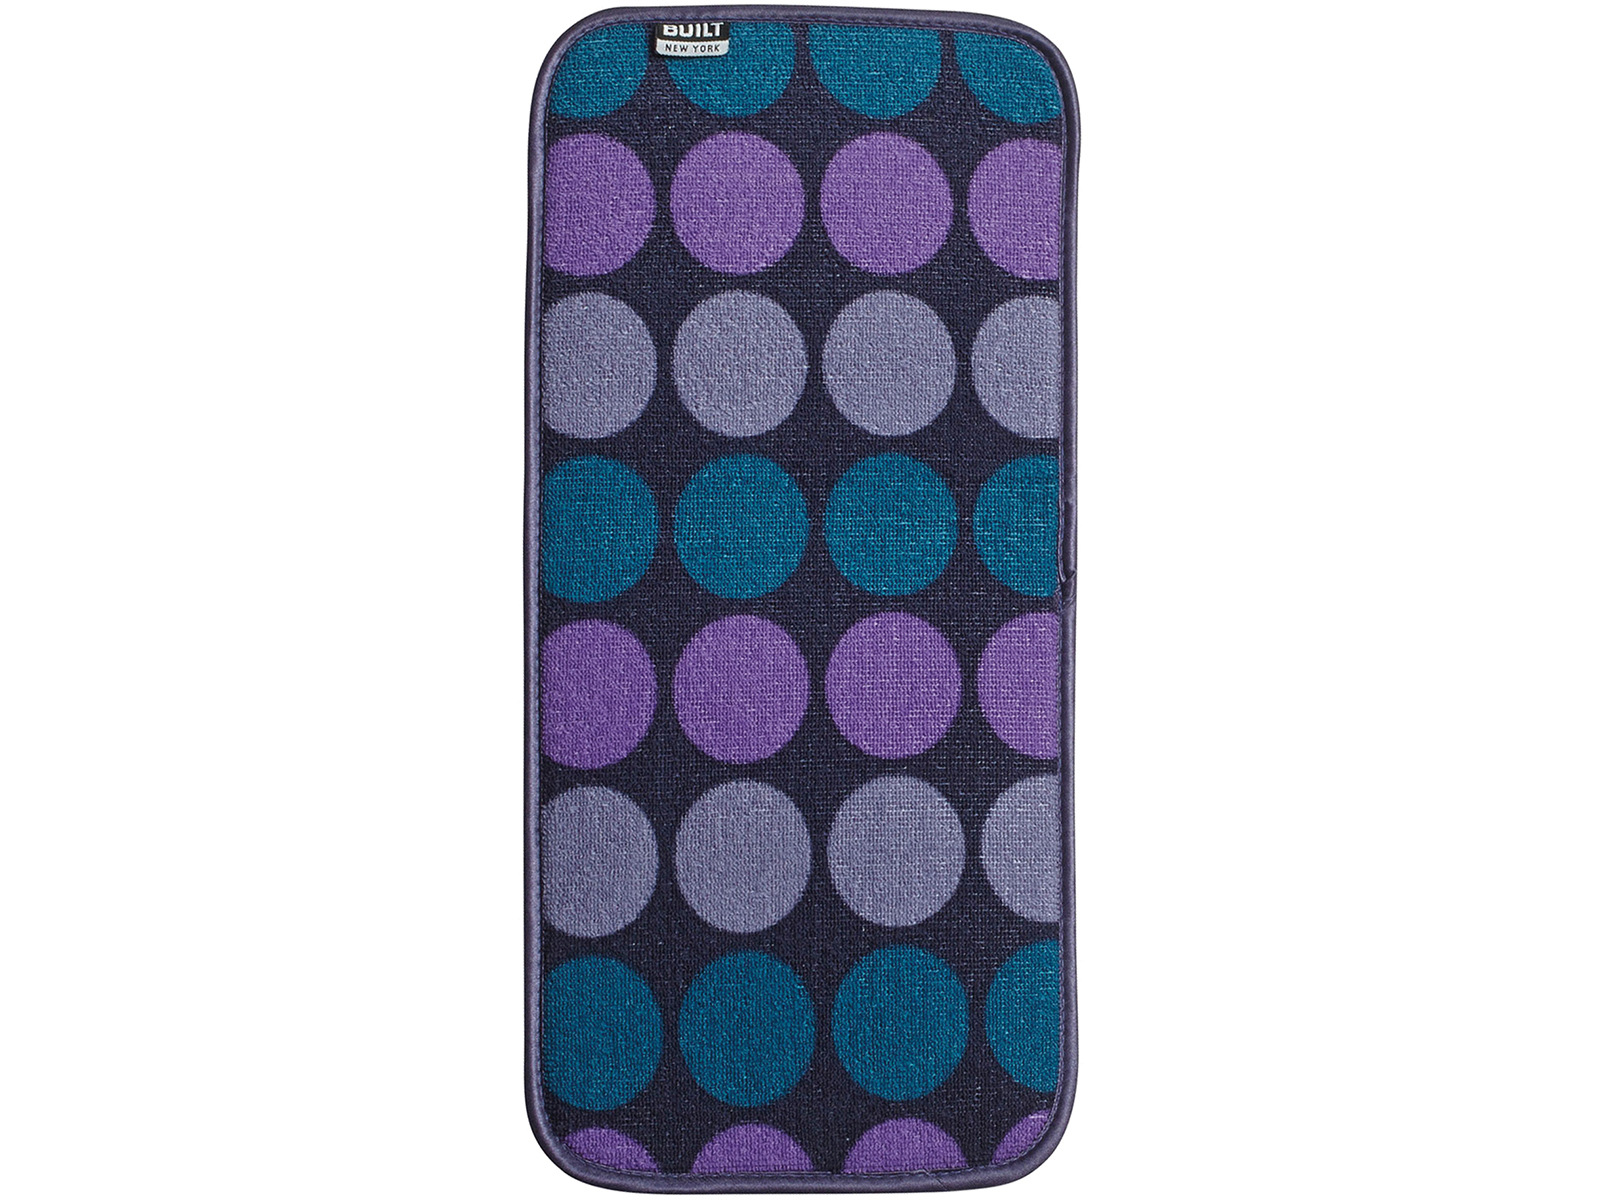 Built Reversible Bar Drying Mat 8x18in Plum Dot